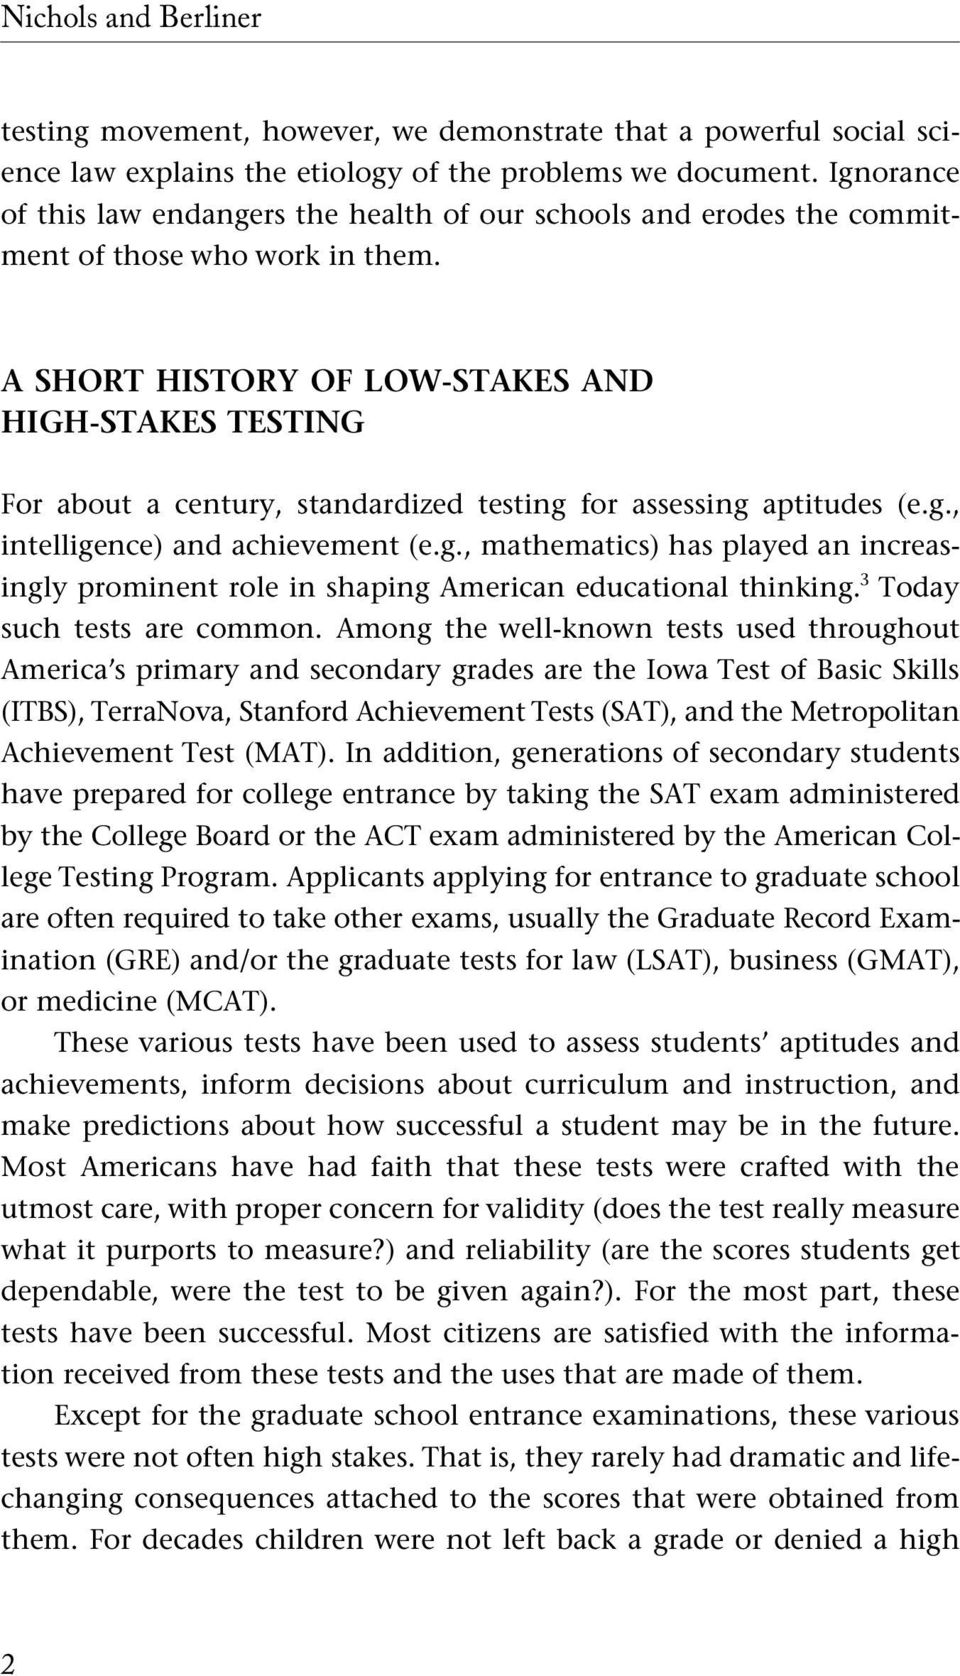 A SHORT HISTORY OF LOW-STAKES AND HIGH-STAKES TESTING For about a century, standardized testing for assessing aptitudes (e.g., intelligence) and achievement (e.g., mathematics) has played an increasingly prominent role in shaping American educational thinking.